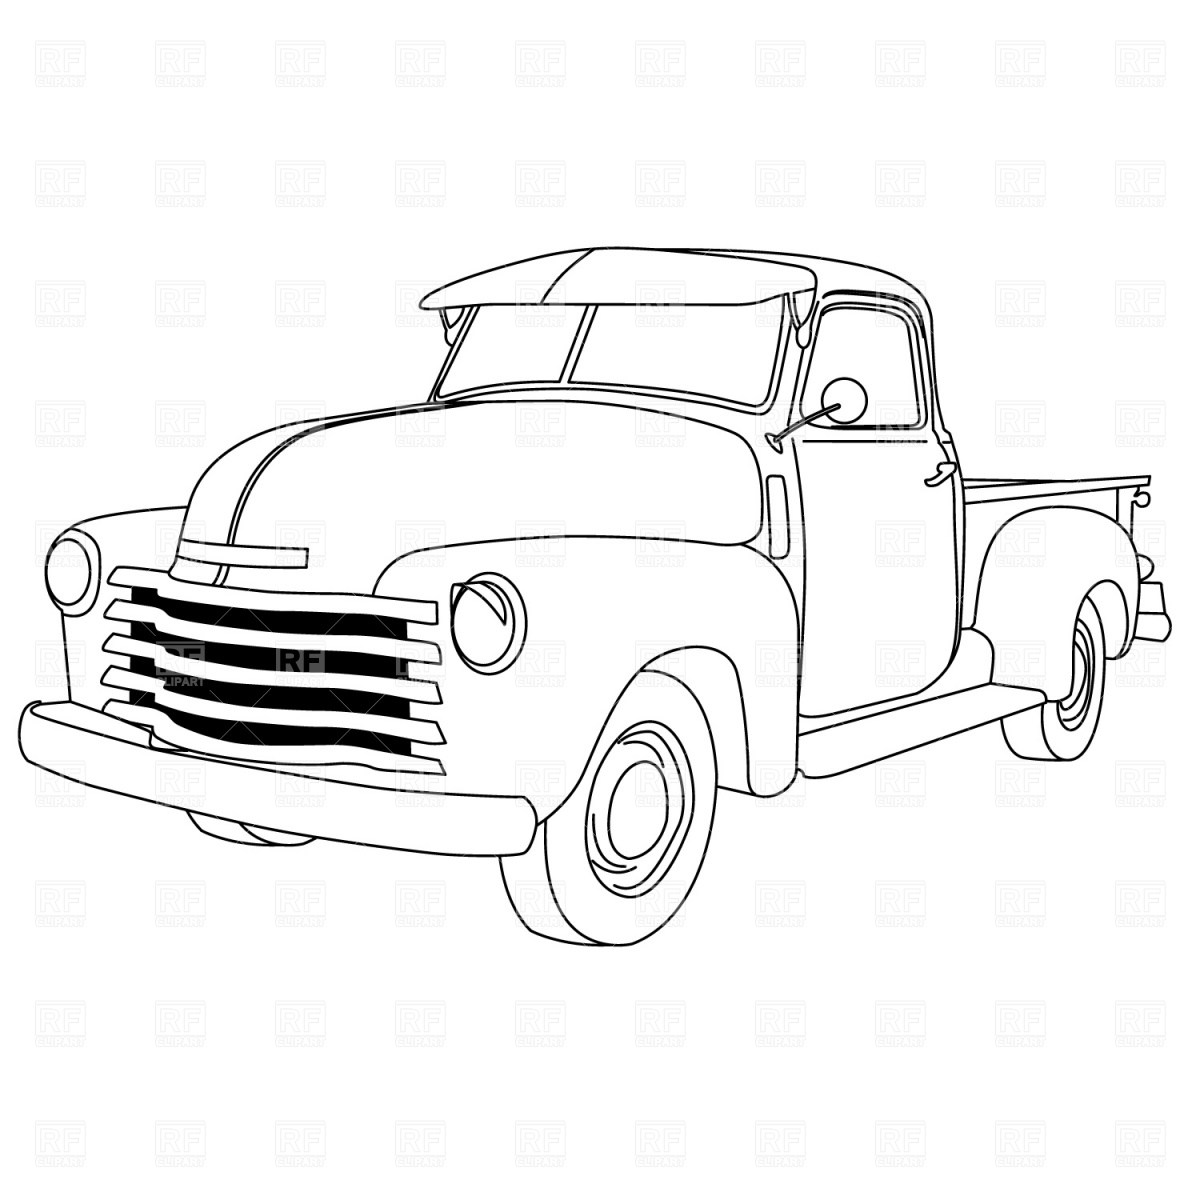 Old truck black and white clipart clipart royalty free download Old truck clipart black and white 3 » Clipart Portal clipart royalty free download